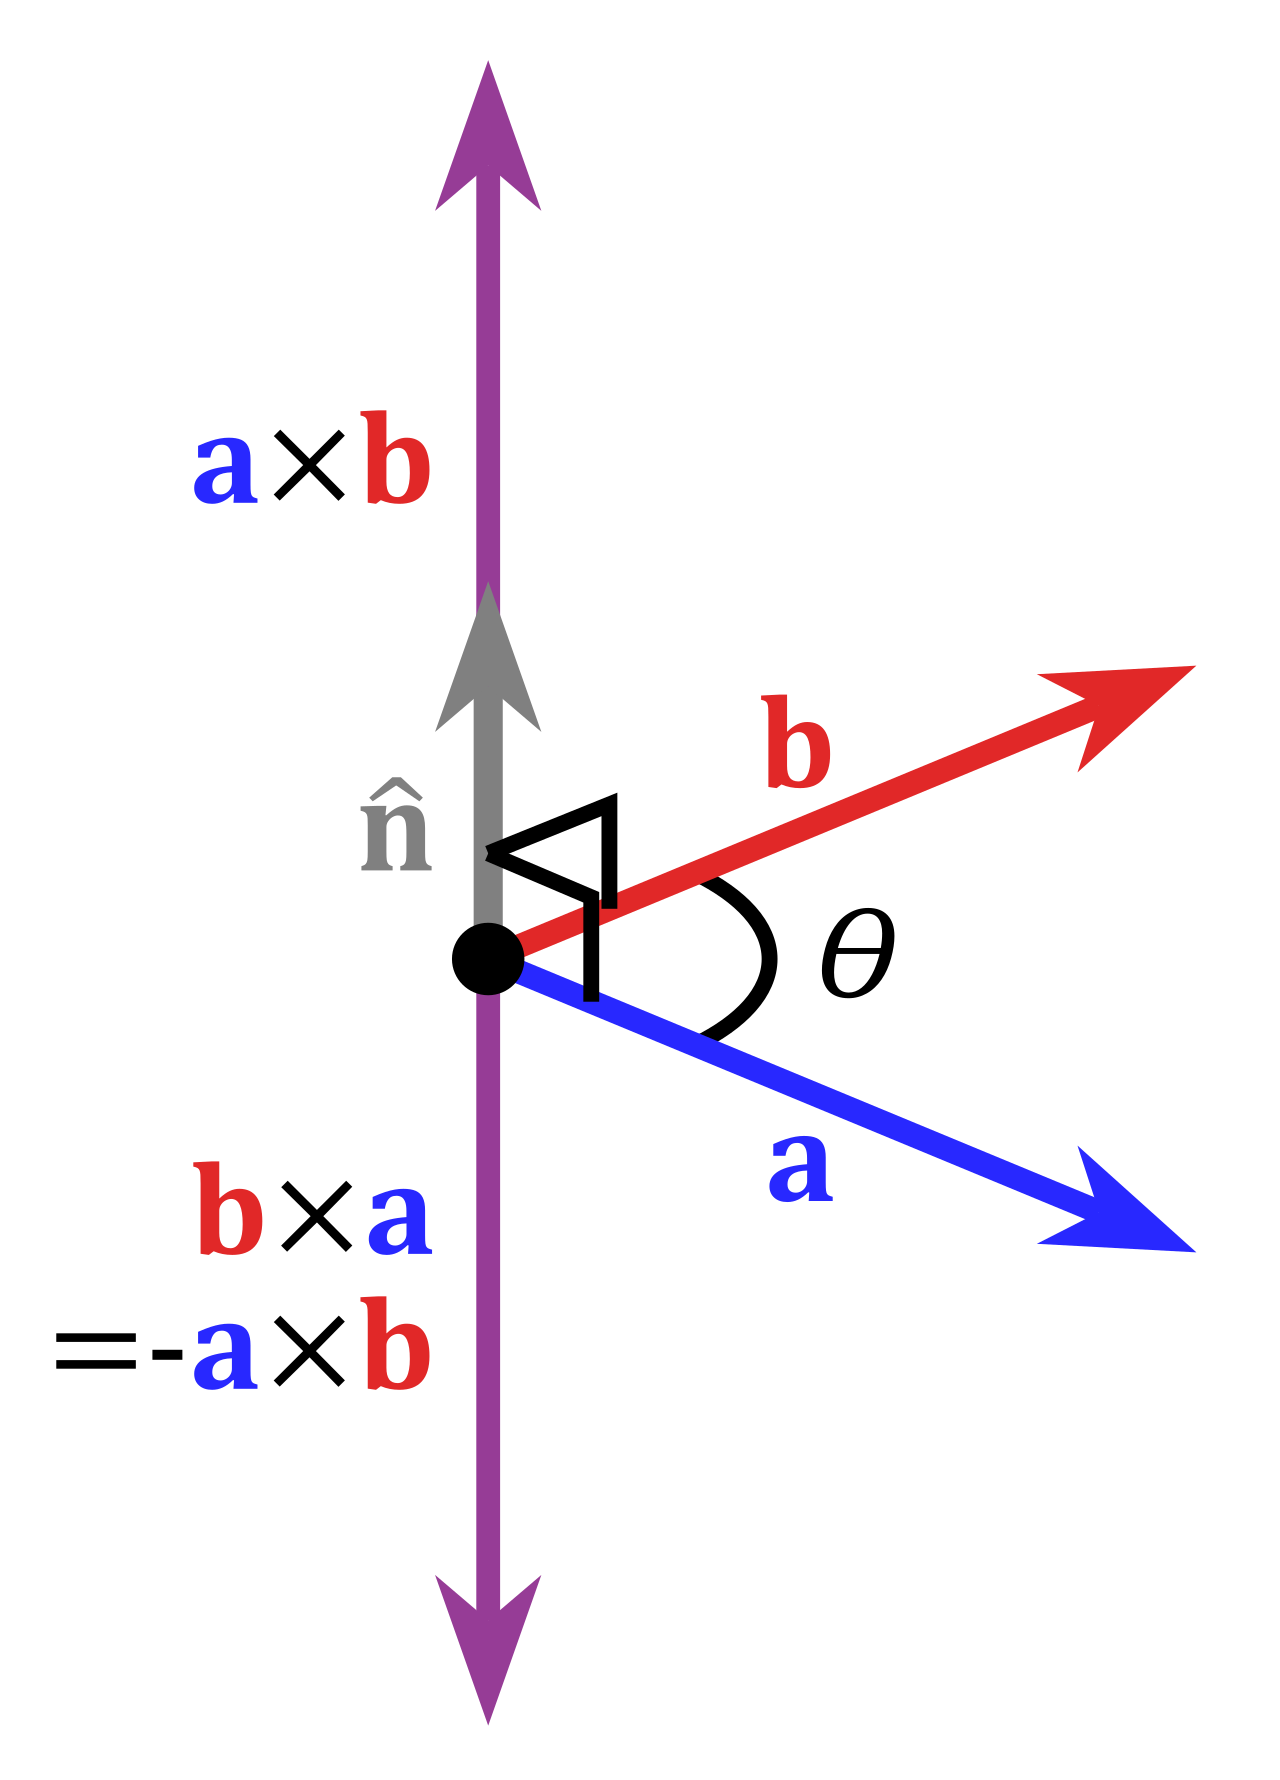 A visual example of the cross product